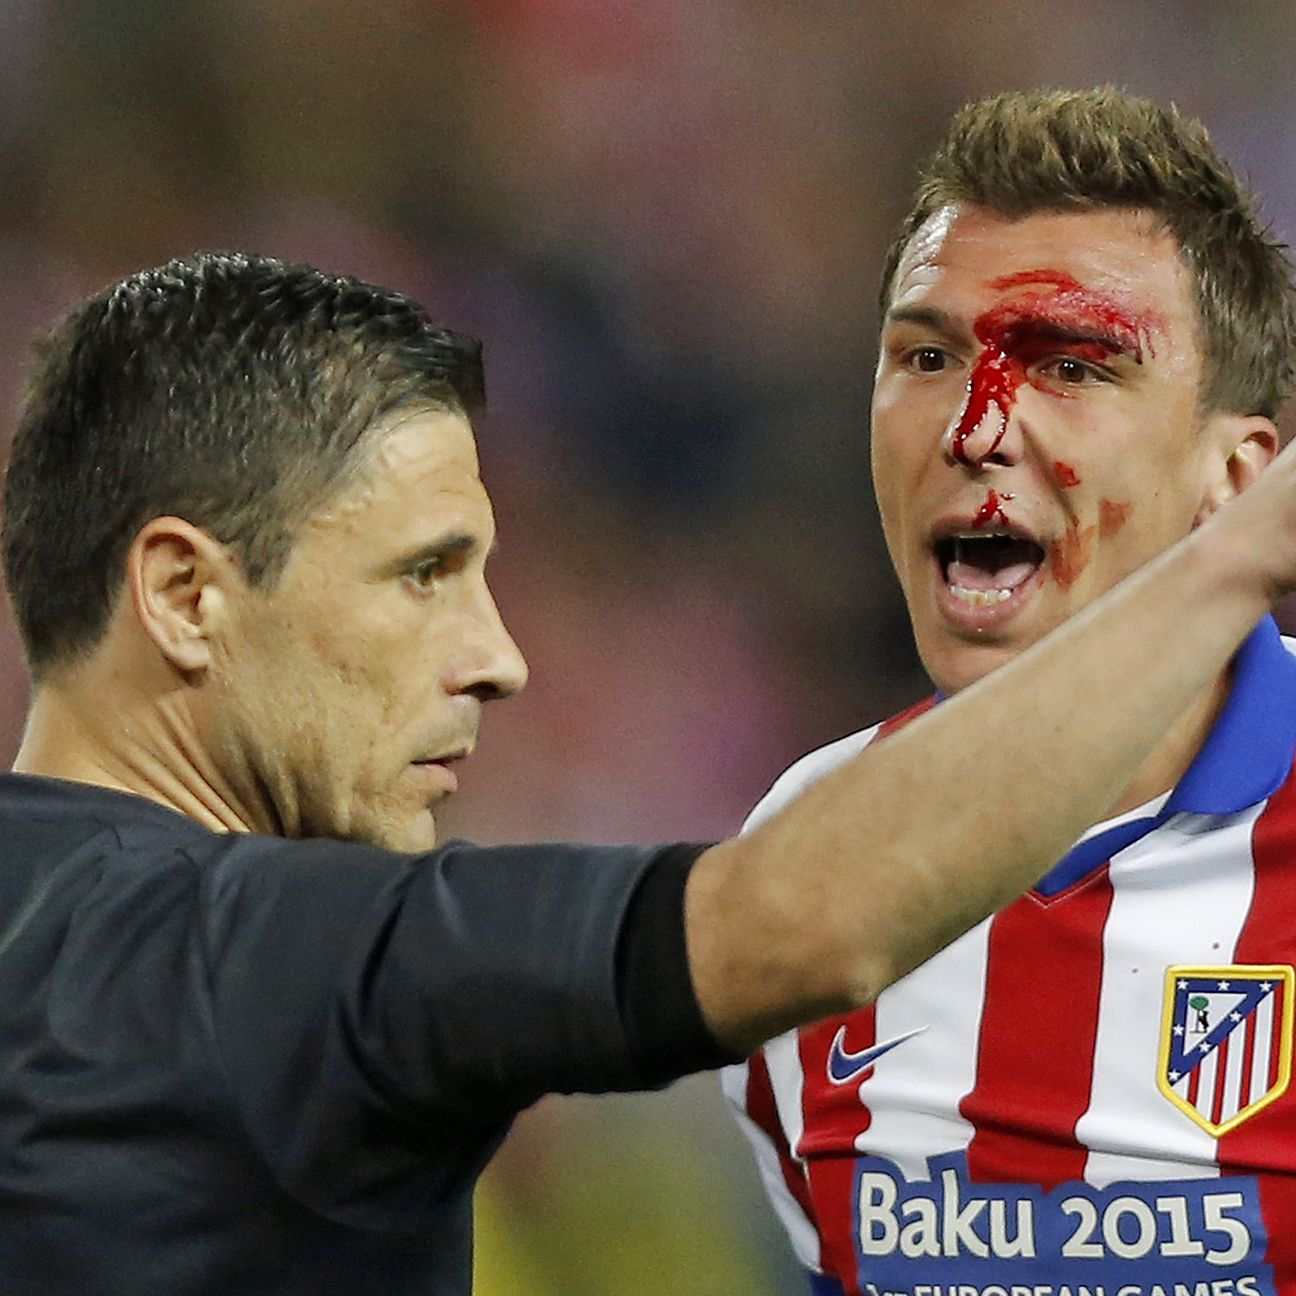 The face of Atletico striker Mario Mandzukic embodied the physical nature of Tuesday's quarterfinal first leg between Real and Atletico.